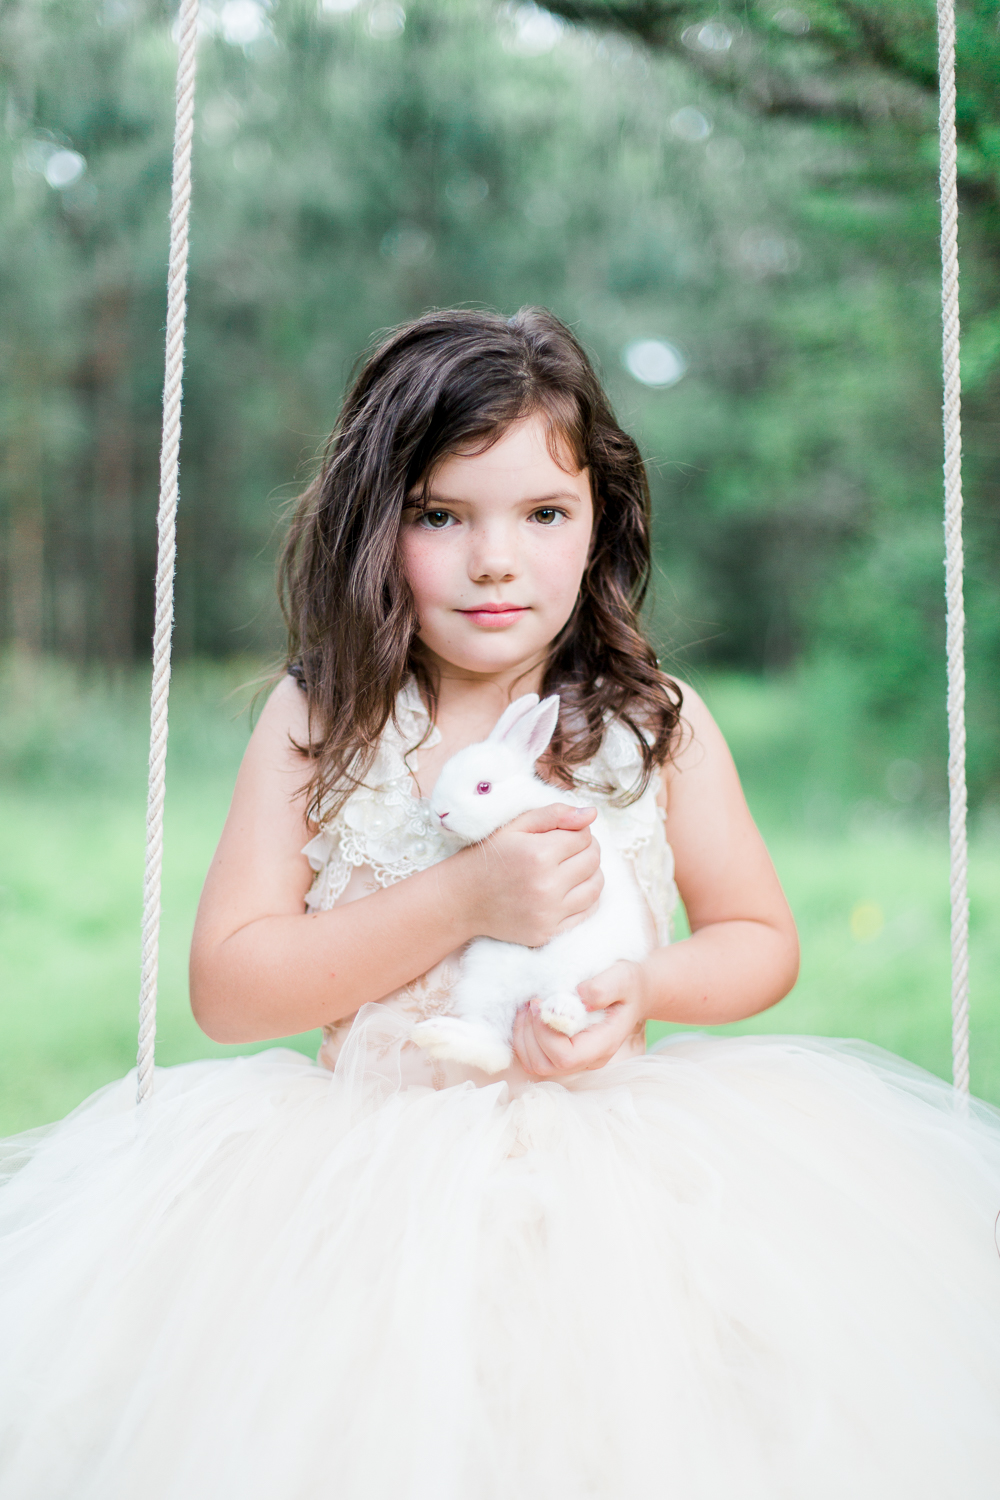 child and pet photography ideas in ponte vedra, fl